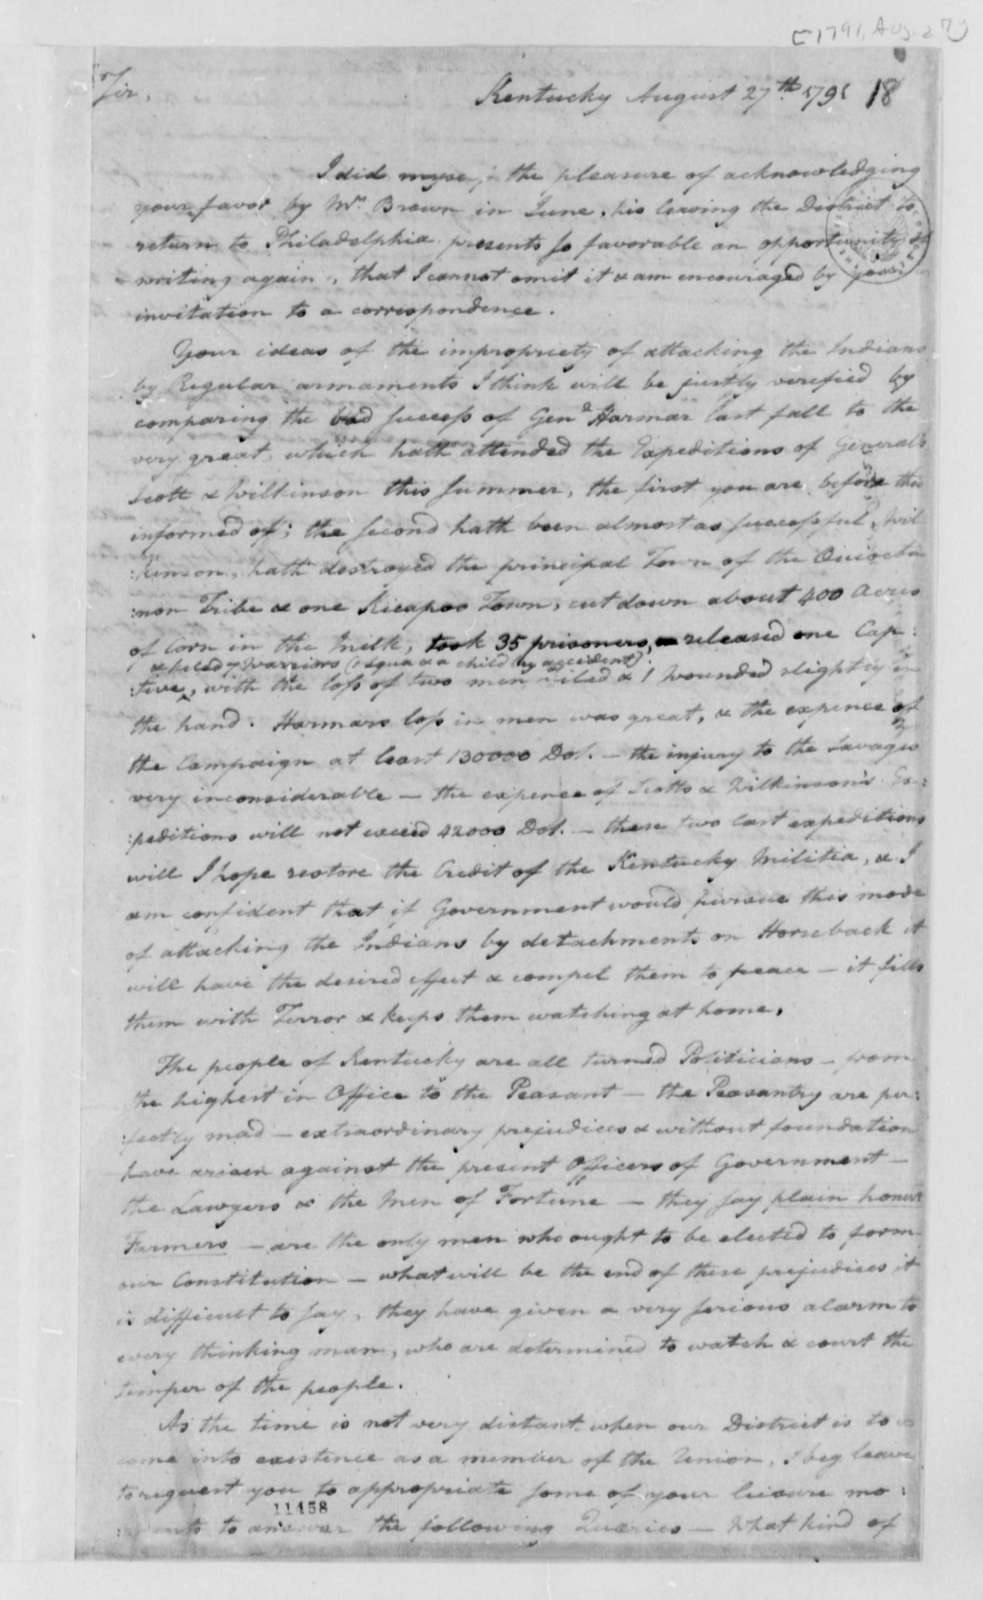 Harry Innes to Thomas Jefferson, August 27, 1791